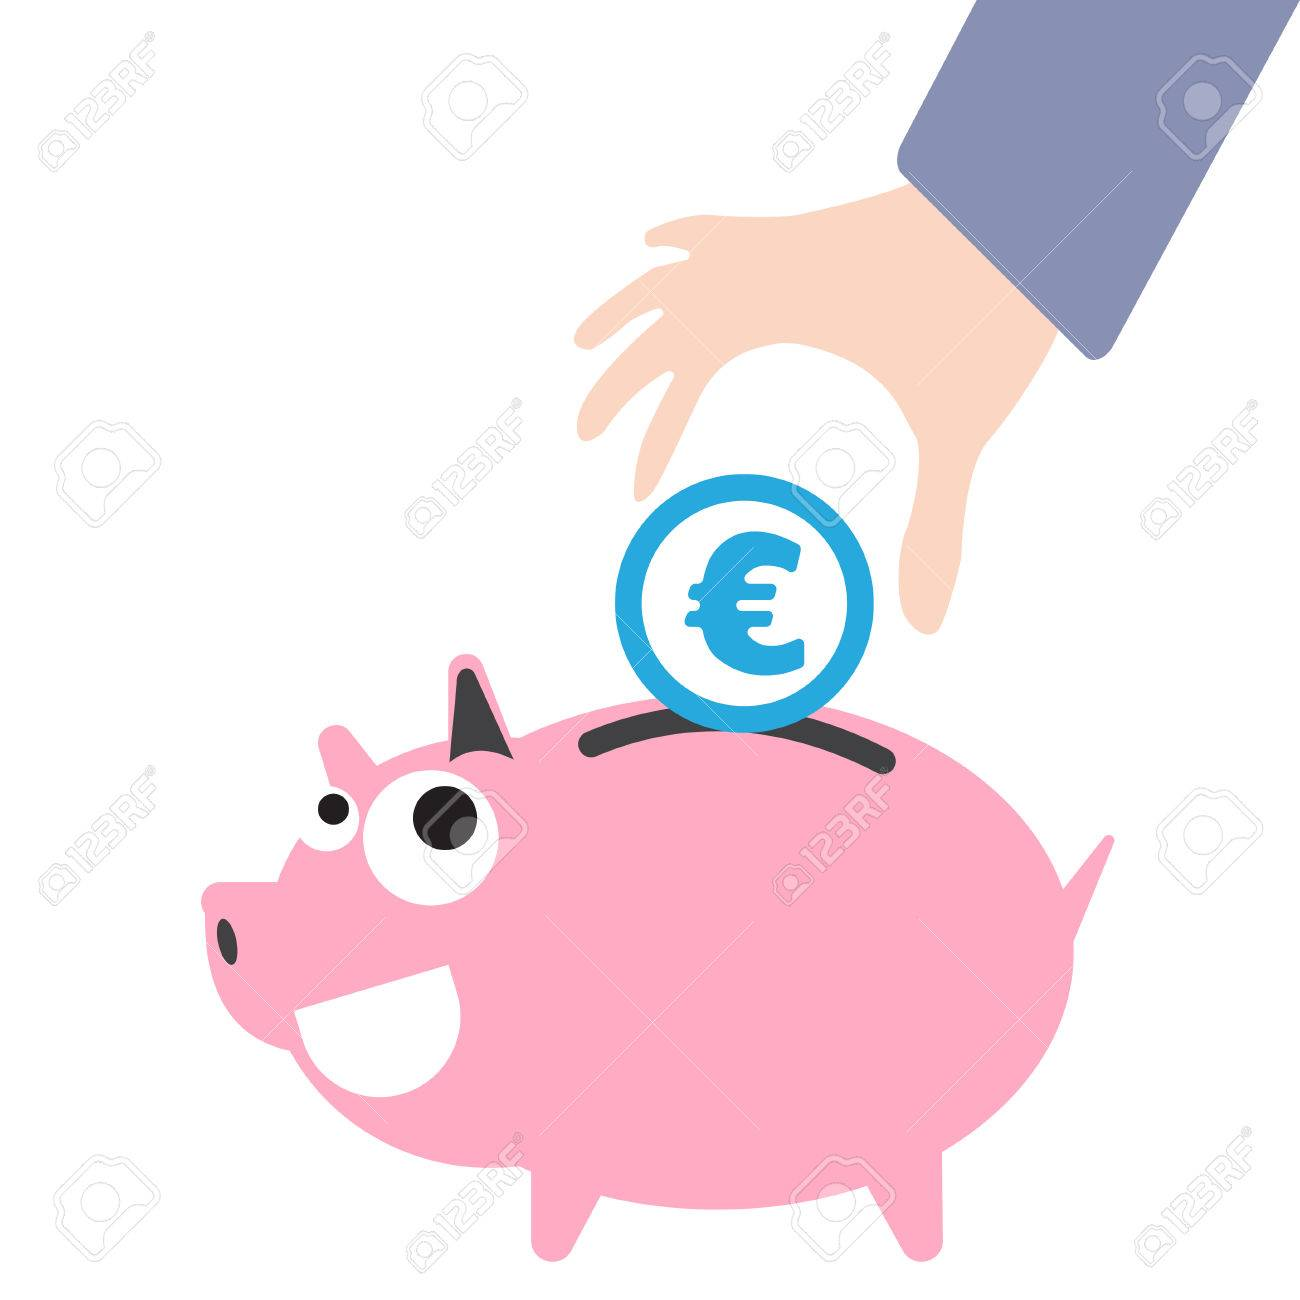 Piggy bank and business hand putting money currency euro symbol piggy bank and business hand putting money currency euro symbol for saving concept in vector buycottarizona Choice Image